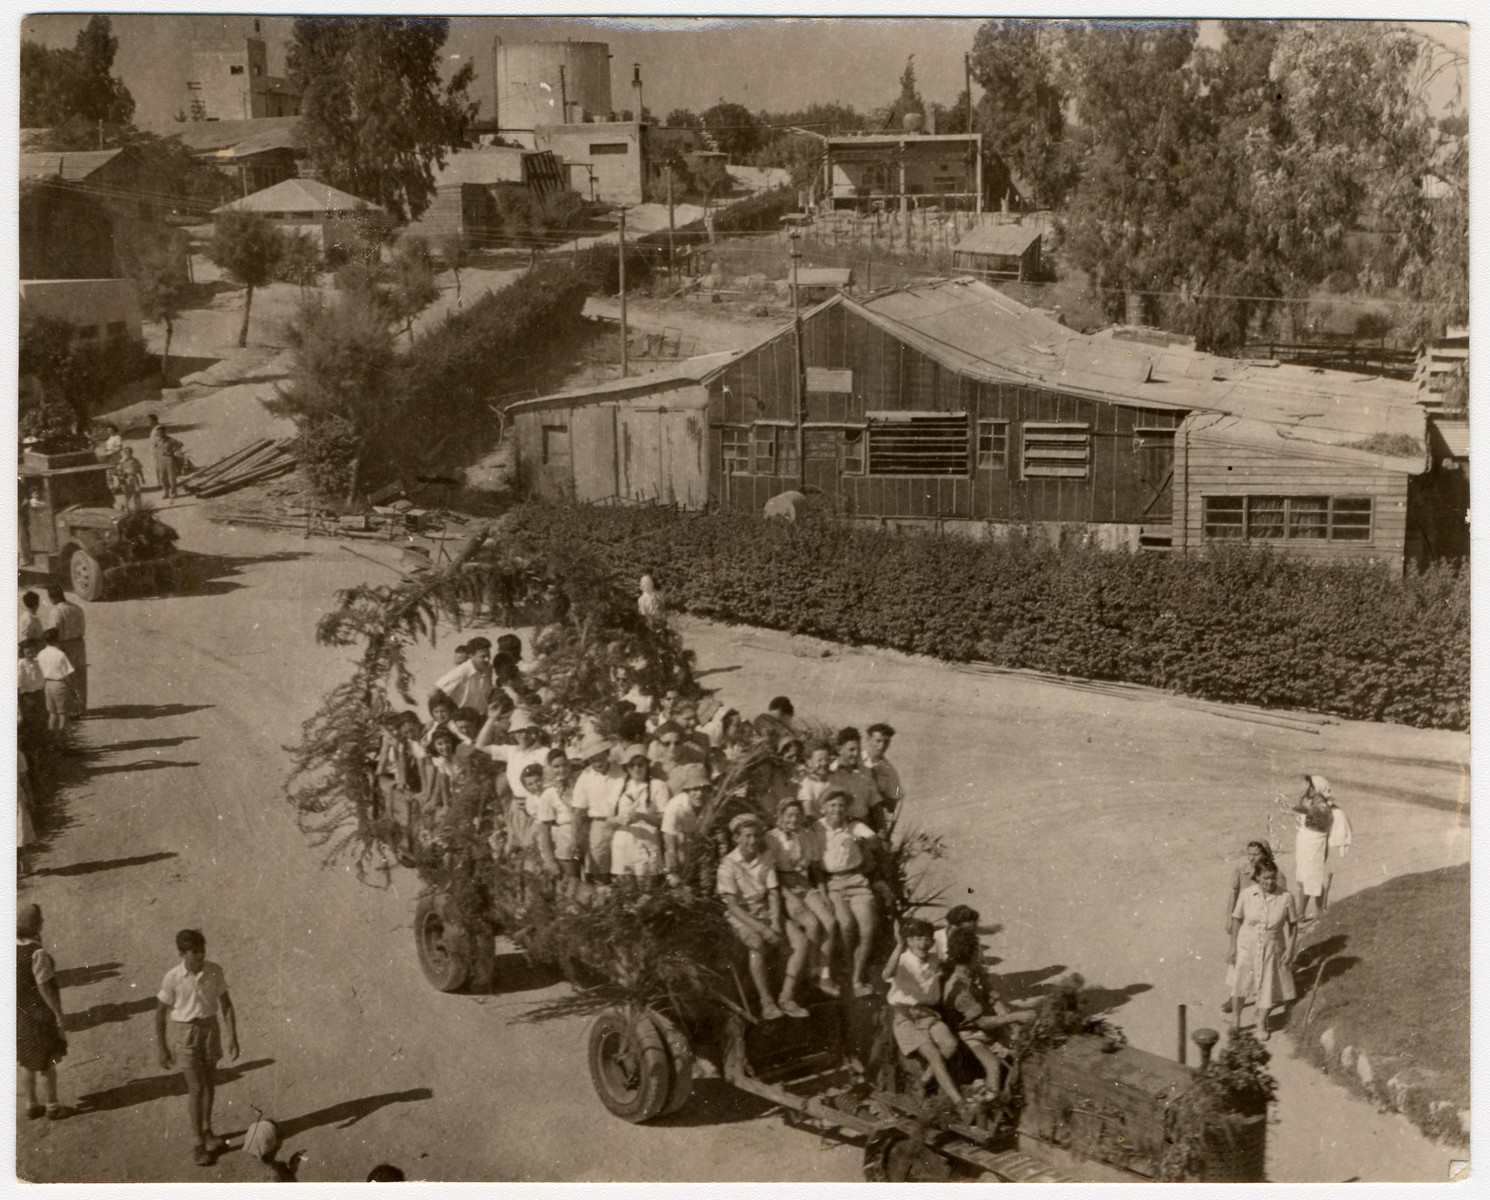 """Teenagers ride on a decorated tractor-pulled wagon to celebrate the harvest festival """"Chag HaBikkurim"""" (Shavuot) on Kibbutz Givat Brenner.  Daniel Barnea is pictured sitting on the wagon on the left."""